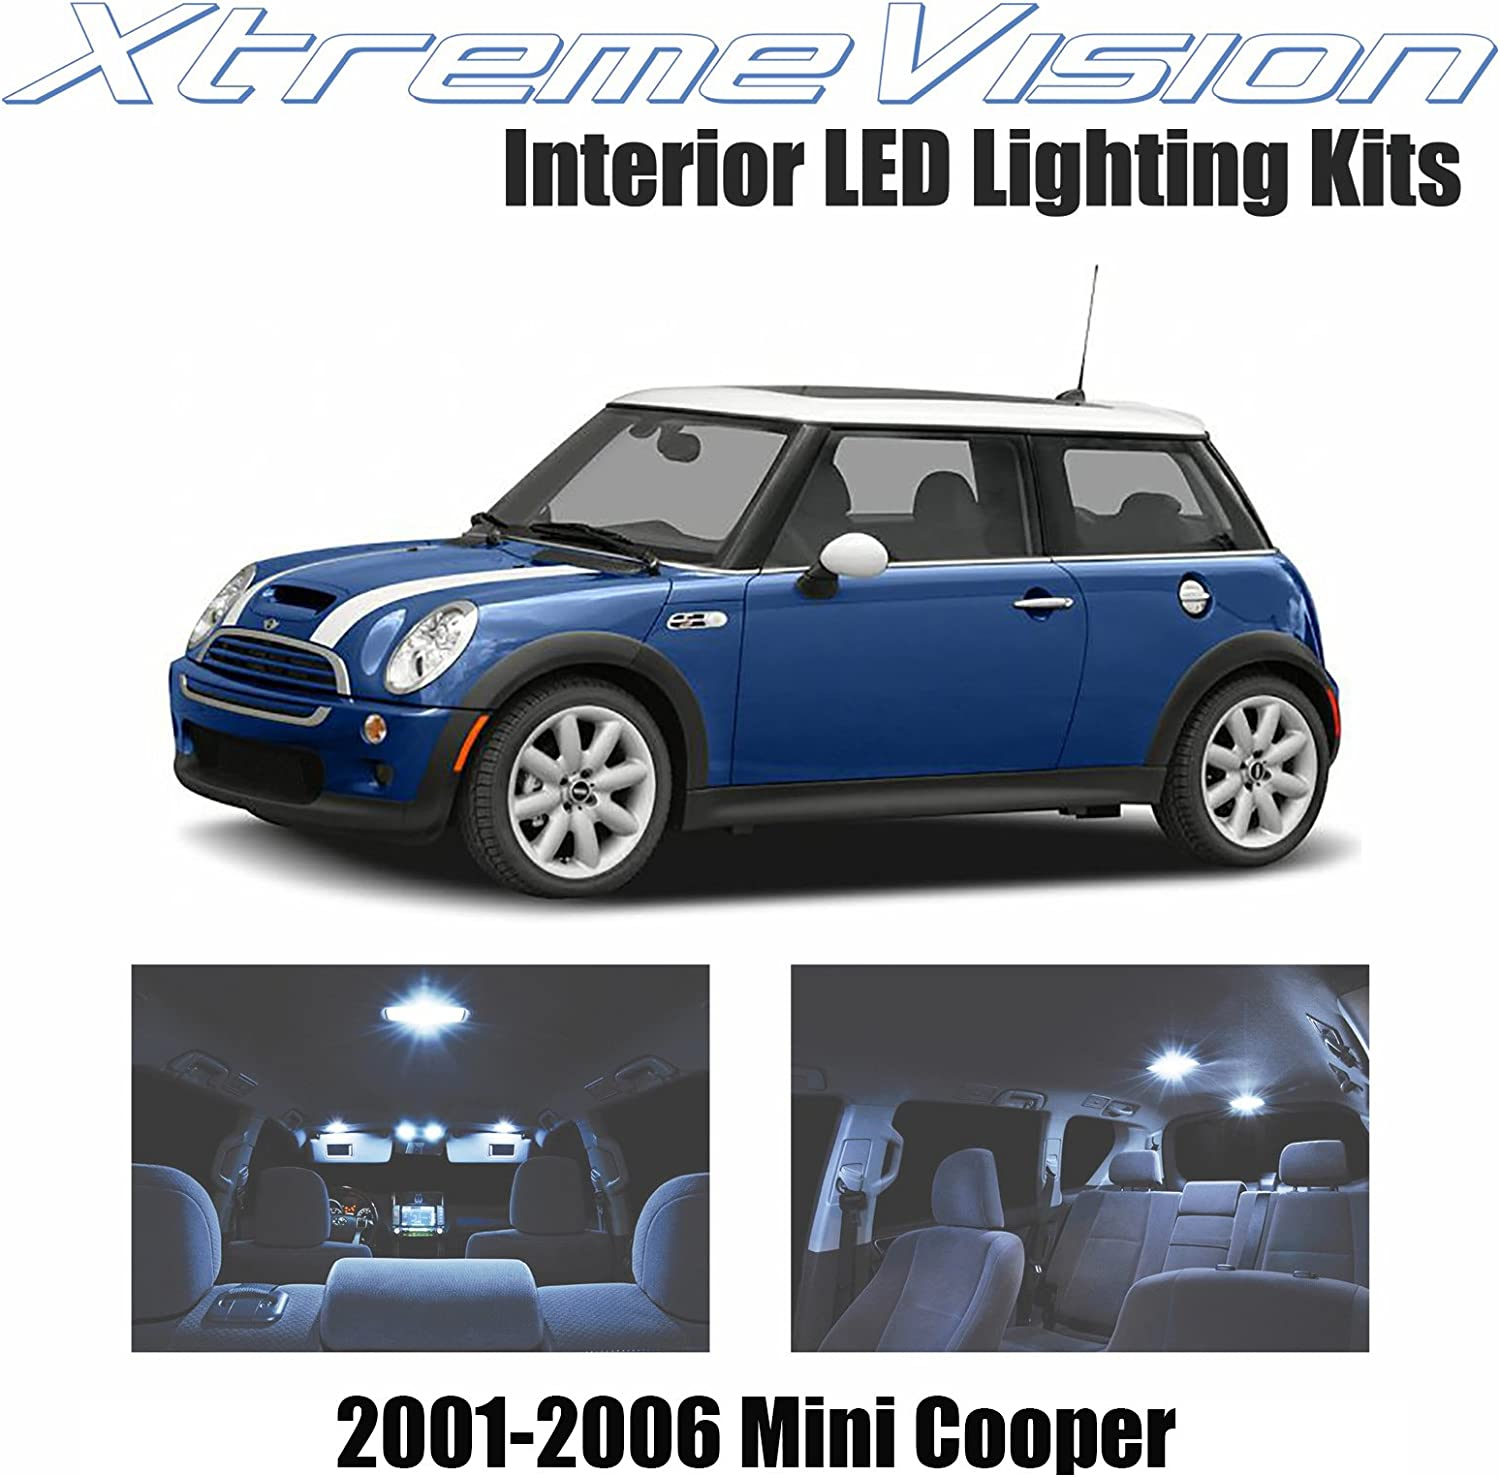 Xtremevision Interior LED for Mini Cooper 2001-2006 (8 Pieces) Cool White Interior LED Kit + Installation Tool